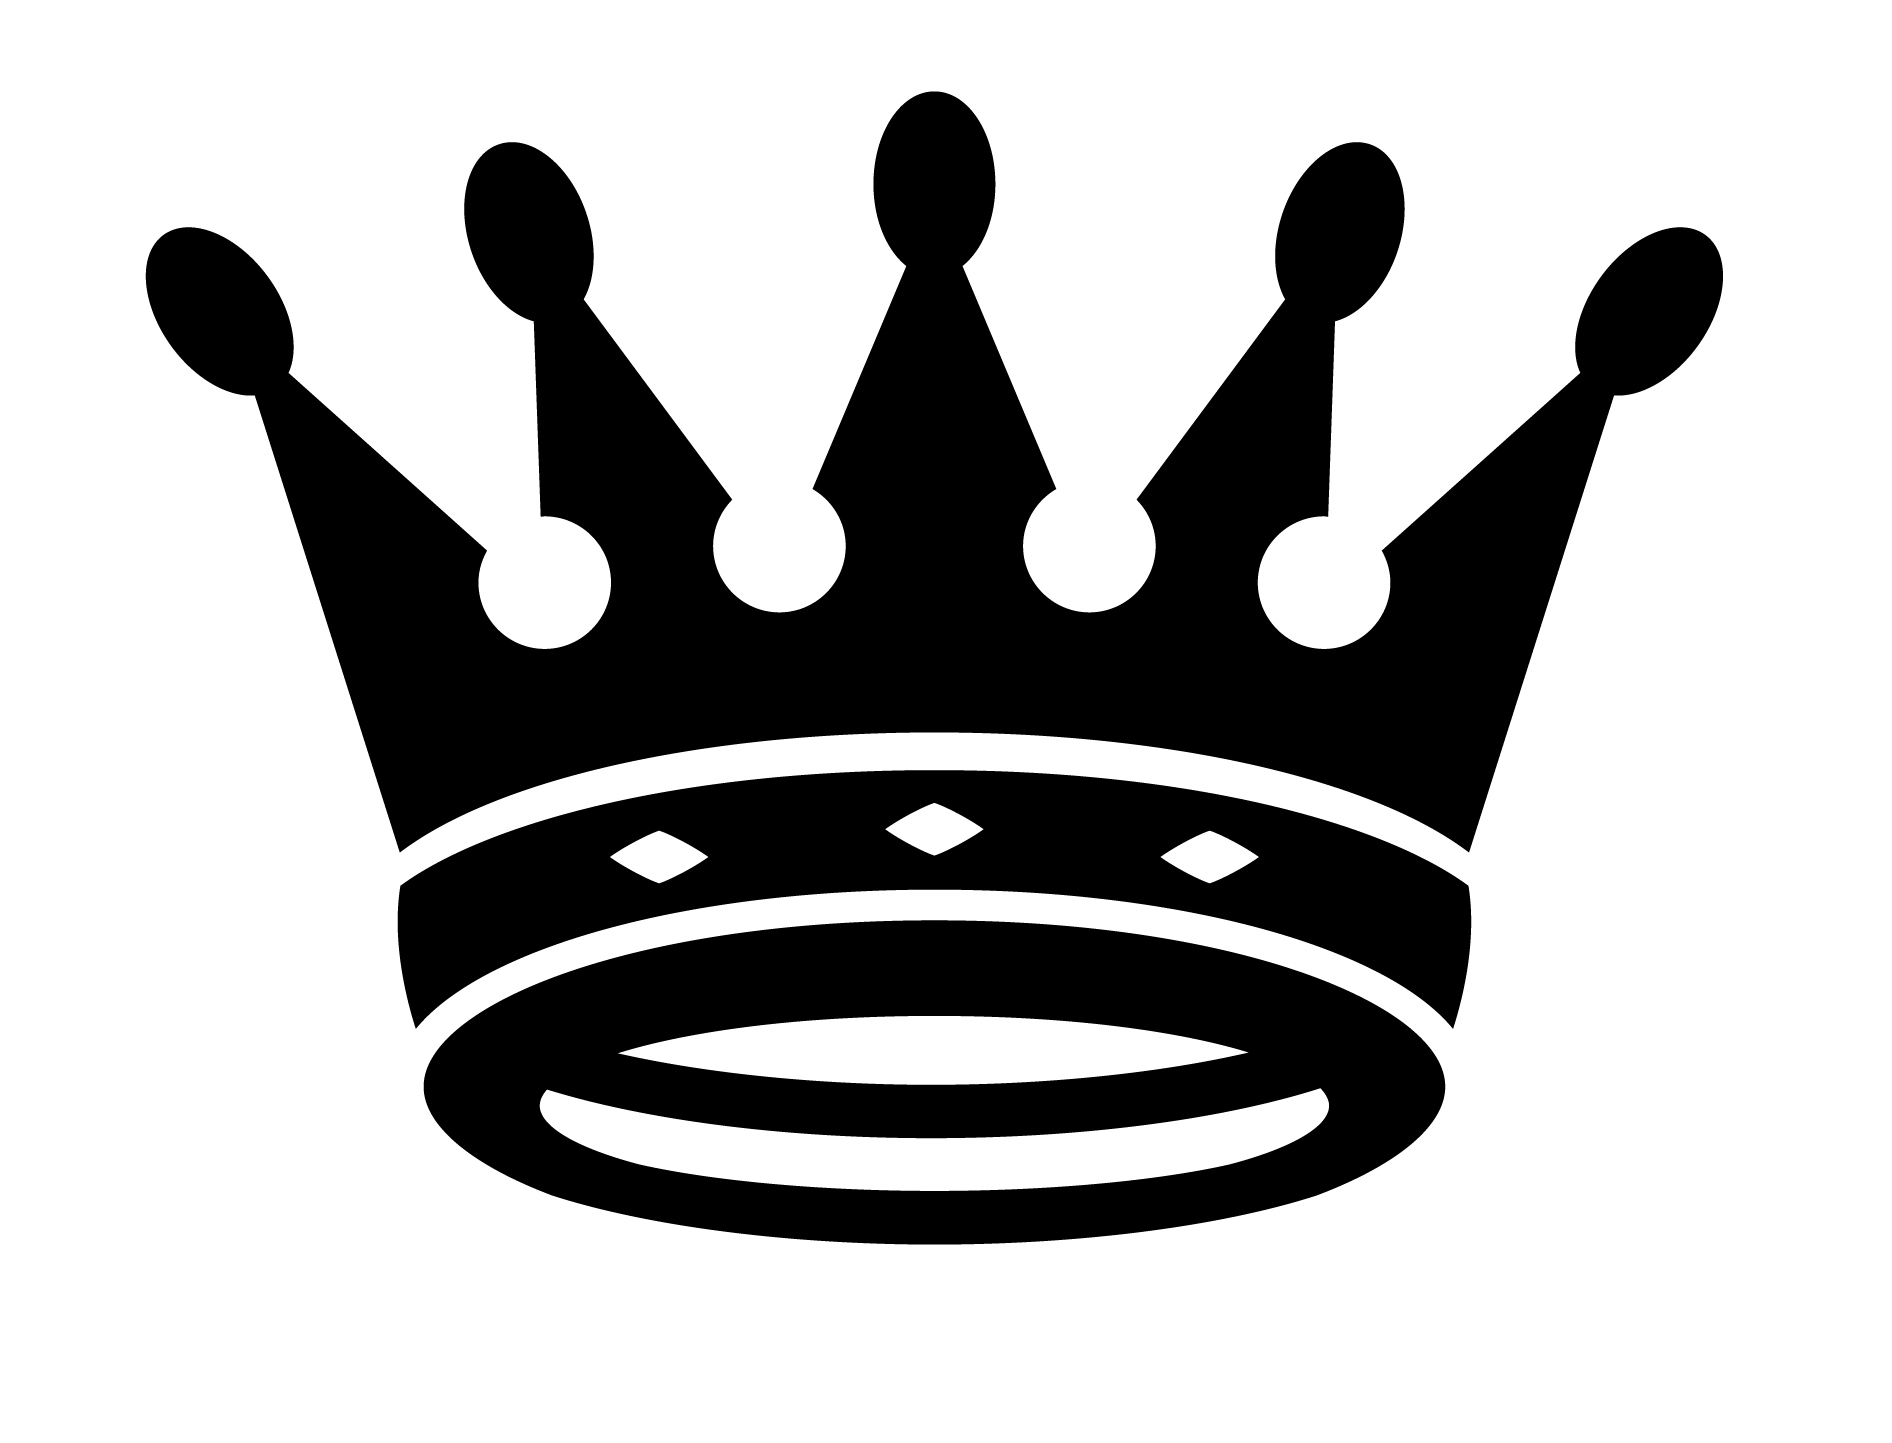 queen crown clipart black and white - Clipground